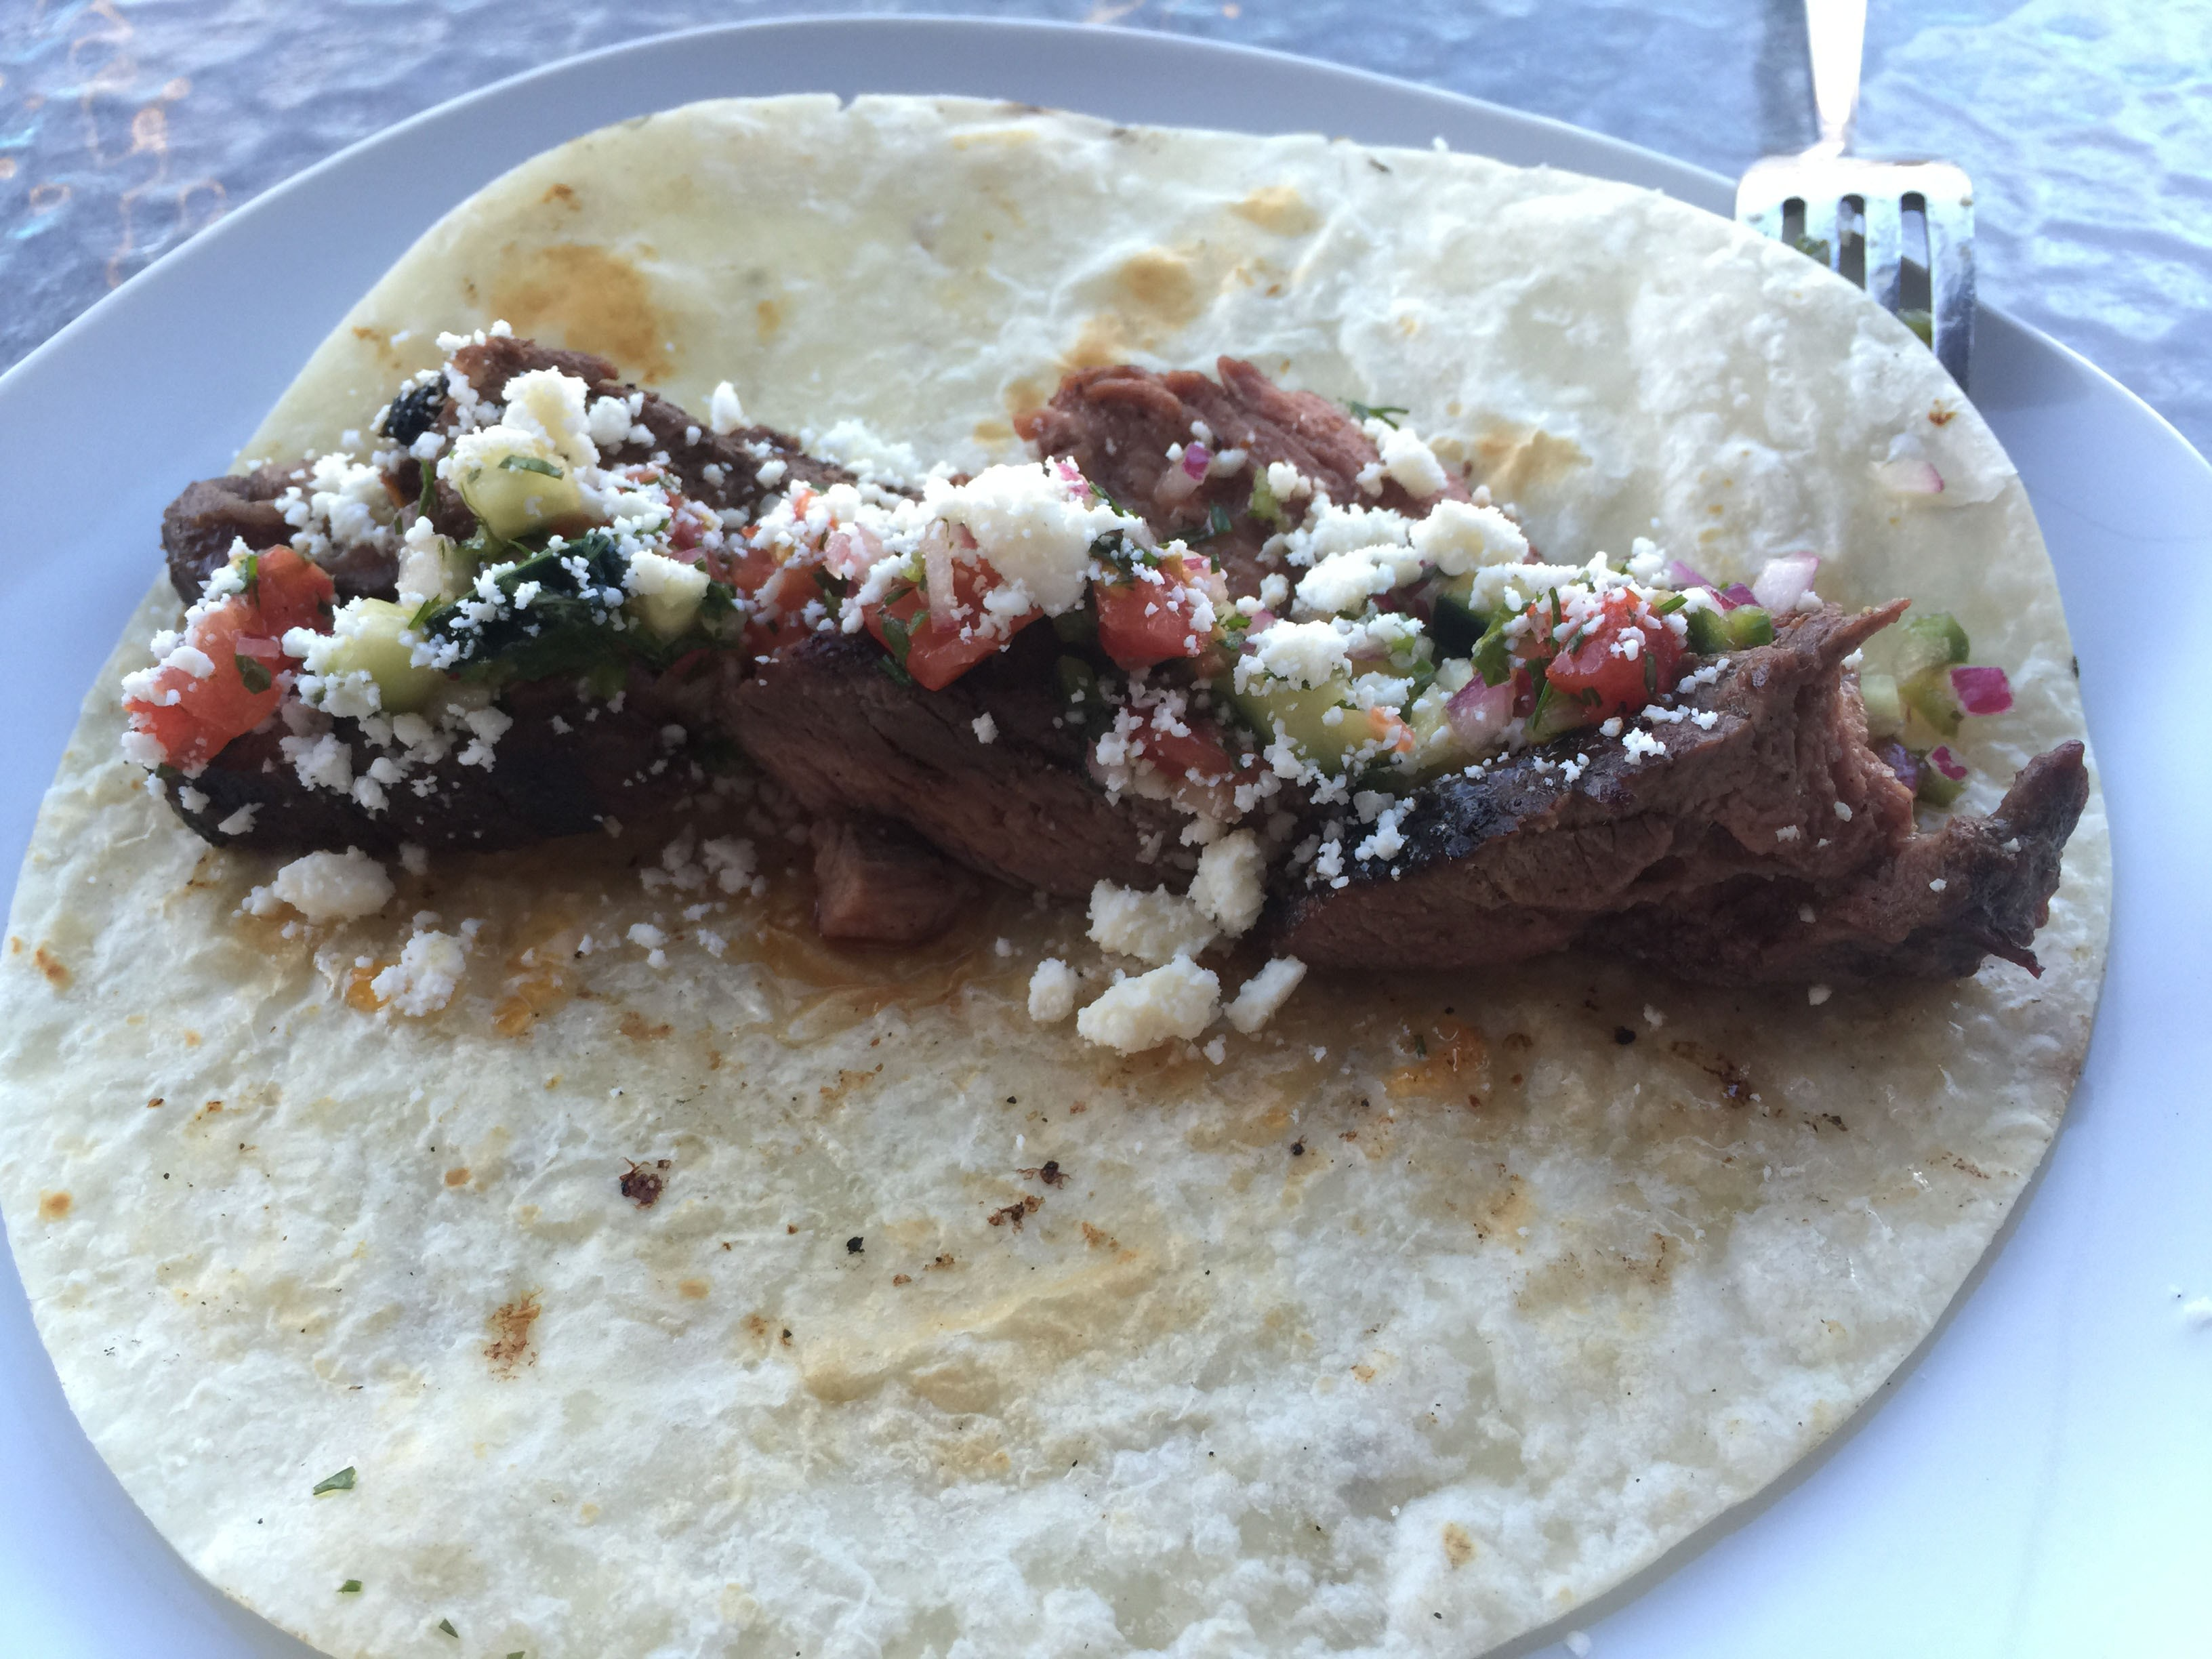 Apricot Smoked Chili Glazed Lamb Tacos, with a Tomato Cucumber Salsa - 45 Minutes